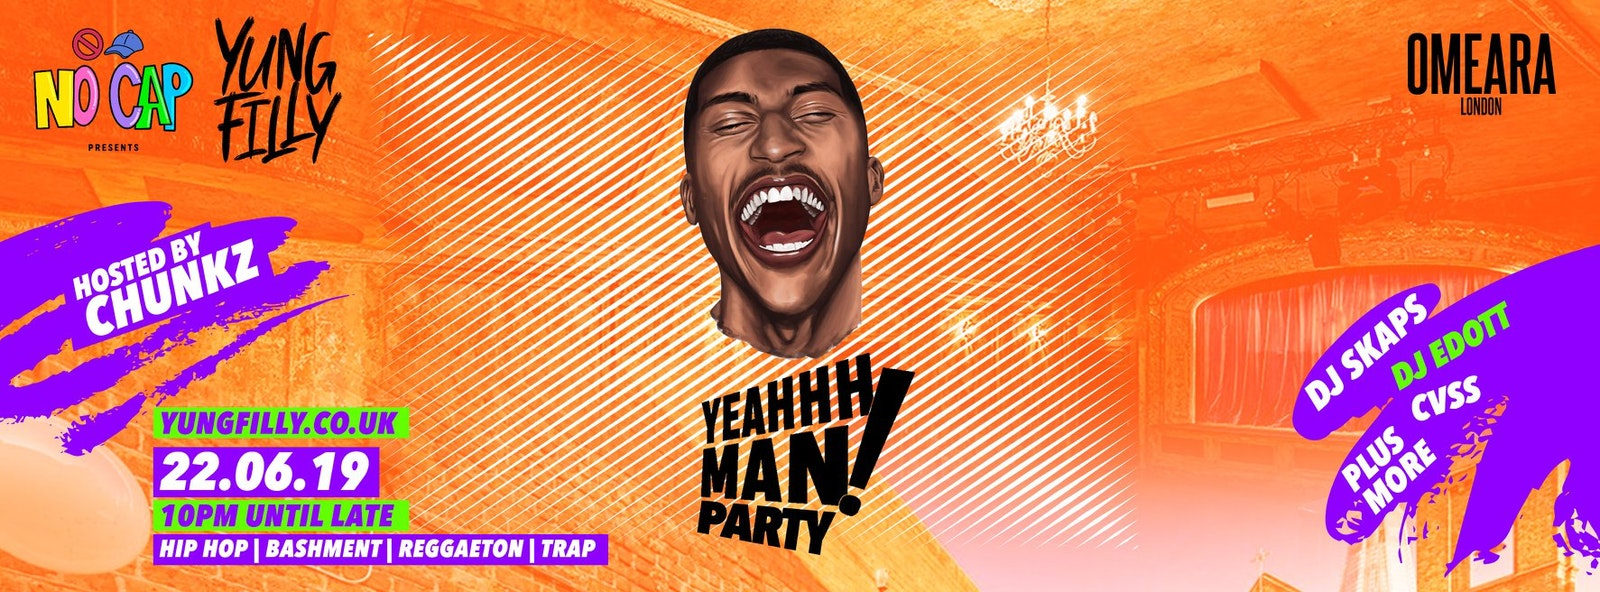 No Cap Presents: Yung Filly's YeahhhMan Party